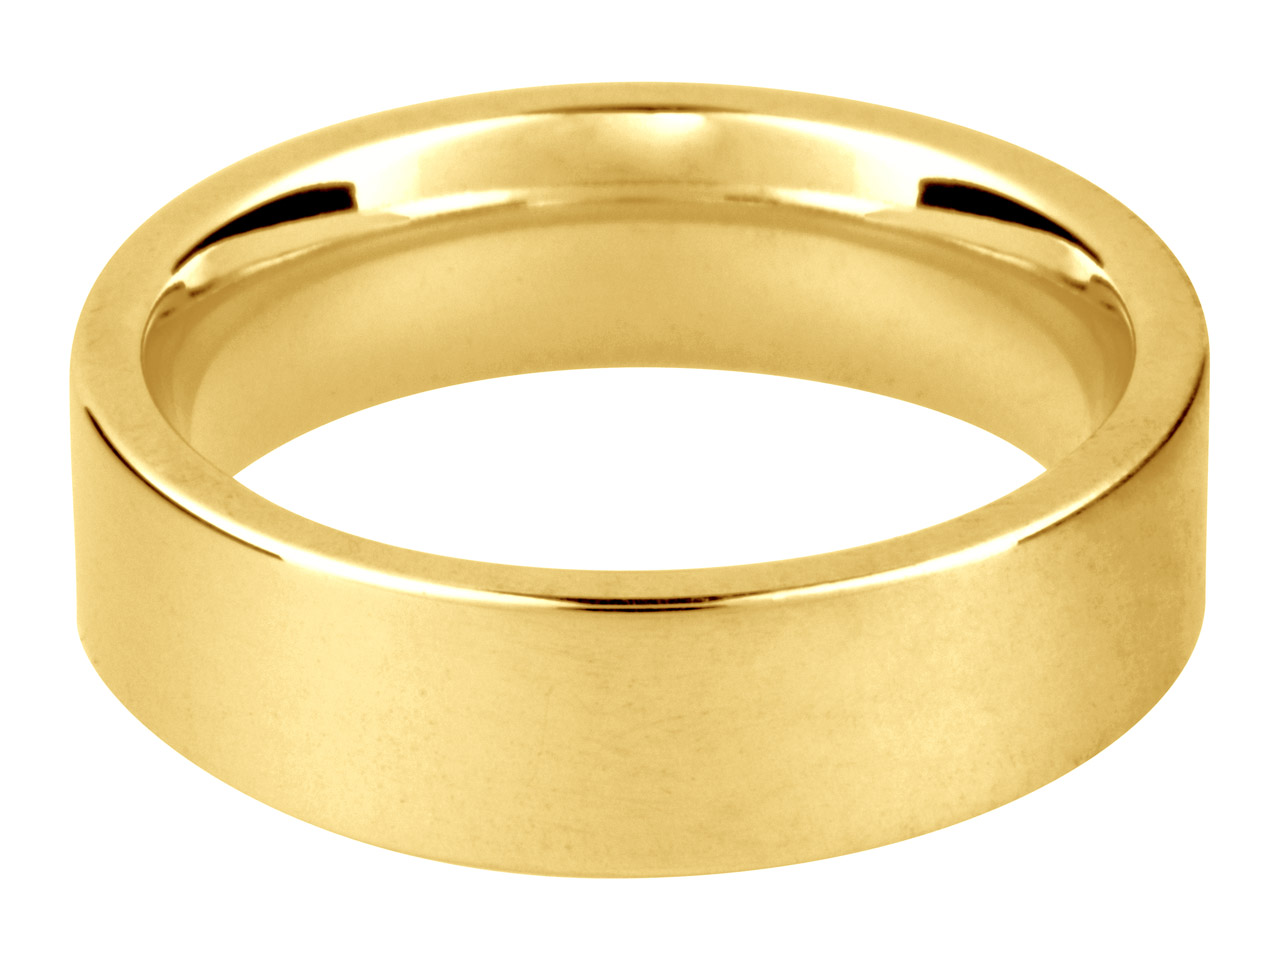 9ct Yellow Easy Fit Wedding Ring   3.0mm K 2.8gms Medium Weight       Hallmarked Wall Thickness 1.54mm